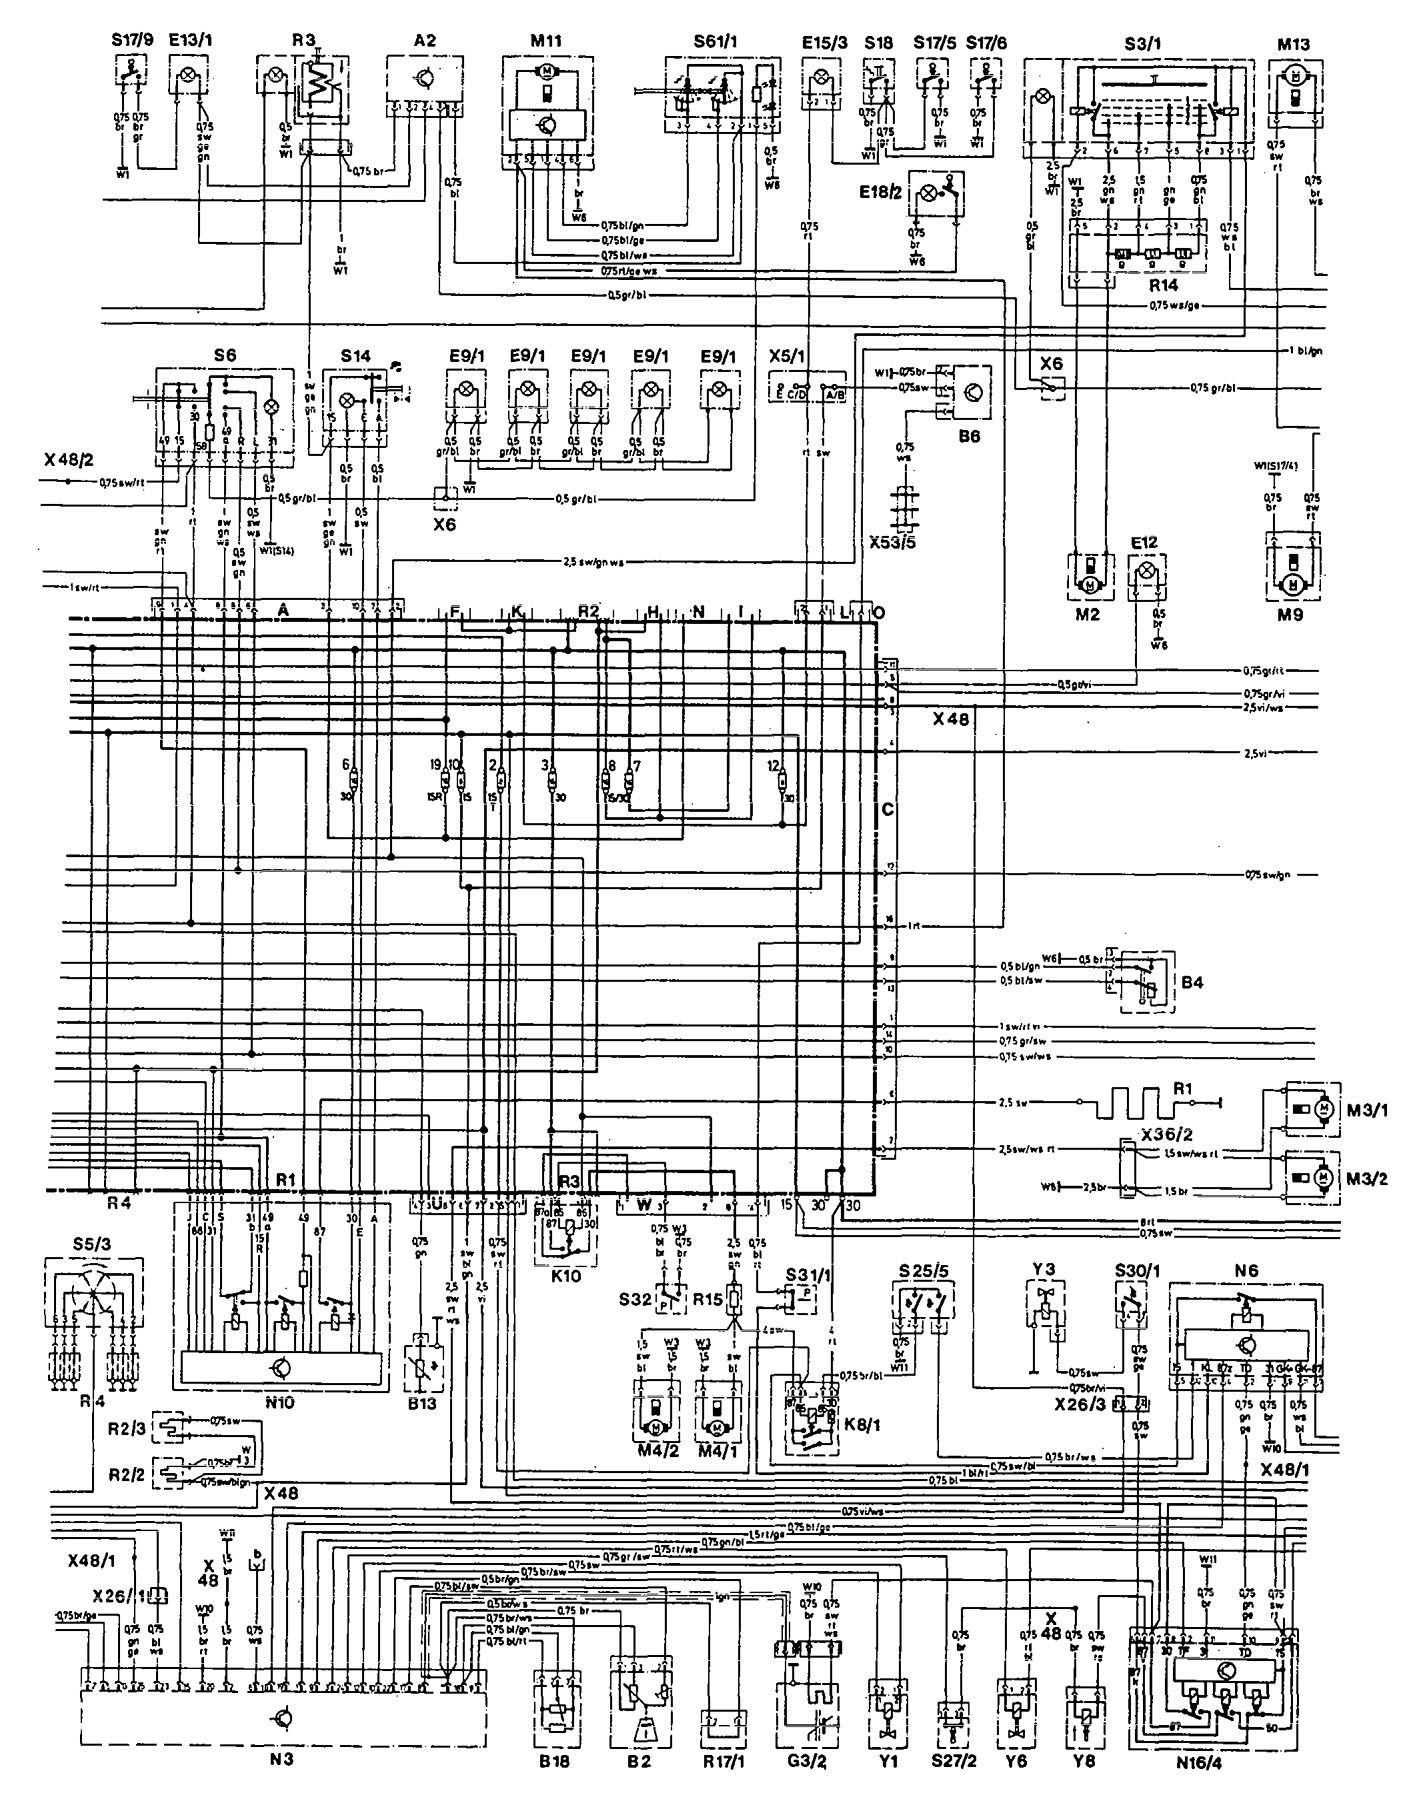 mercedes 190e workshop manual download  mercedes benz 300e 1990 1991 wiring  diagrams power distribution carknowledge 1986